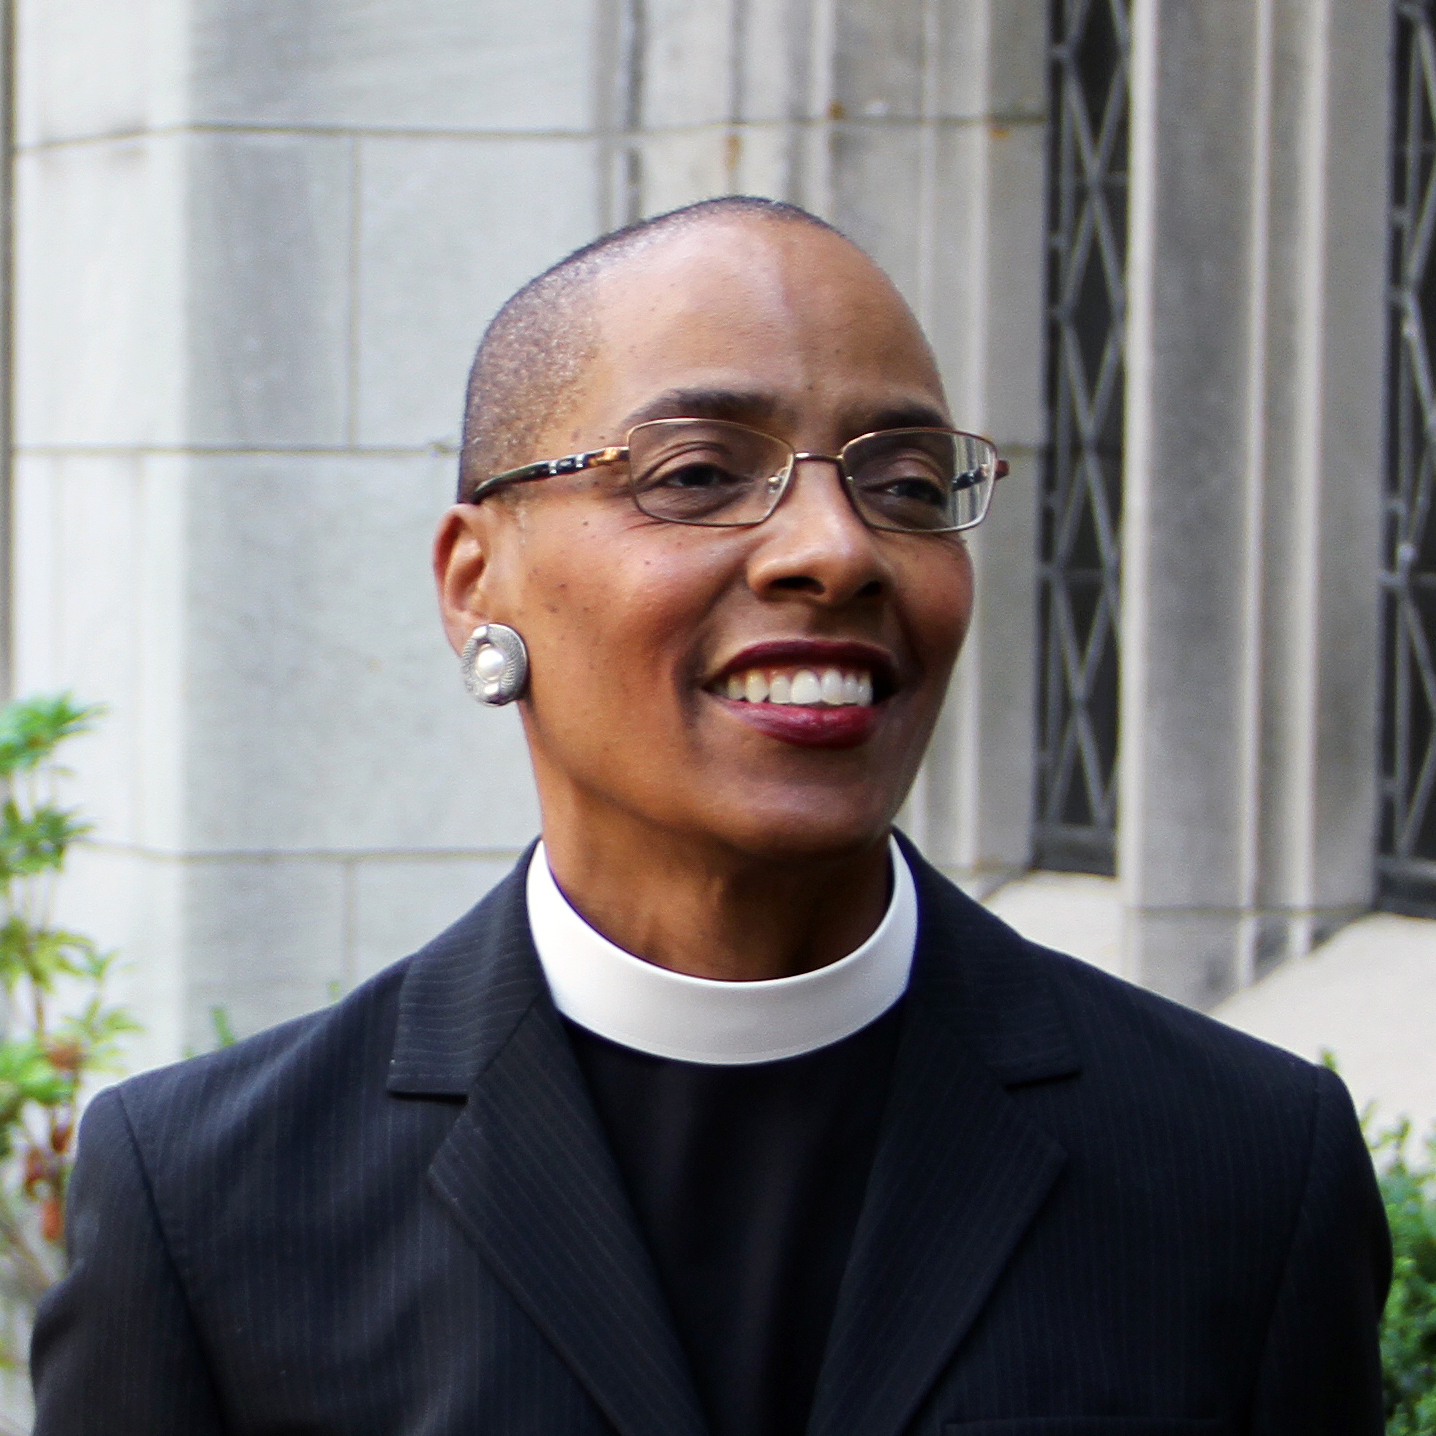 On April 6, 2019 ECCT invites everyone to one-day workshop with The Very Rev. Dr. Kelly Brown Douglas on the history of racism